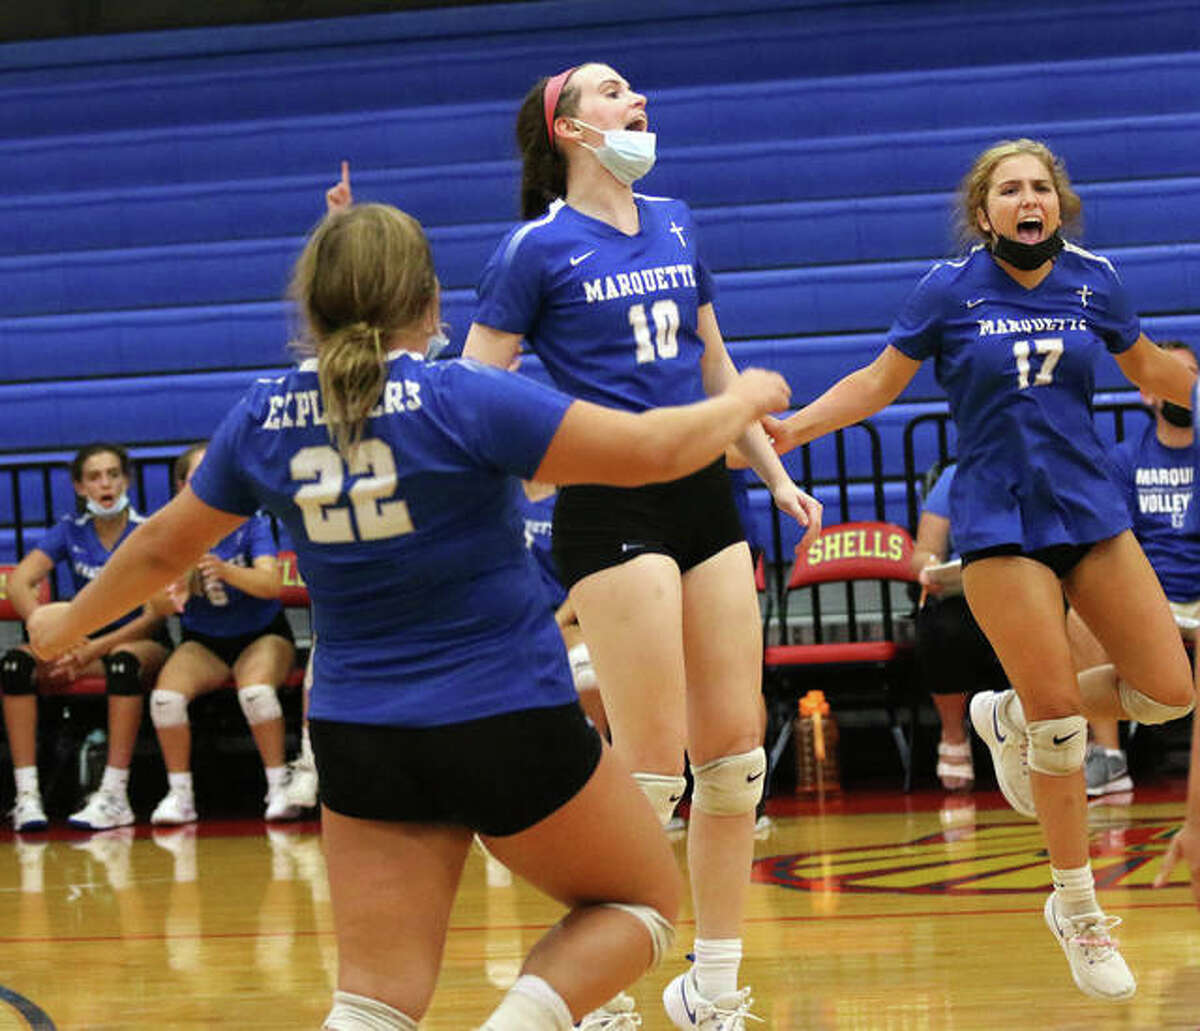 Marquette's Abby Williams (10) celebrates her ace on match point to beat EA-WR with Explorers teammates Torrie Fox and Shay O'Leary on Monday night in the Roxana Tourney at Milazzo Gym.